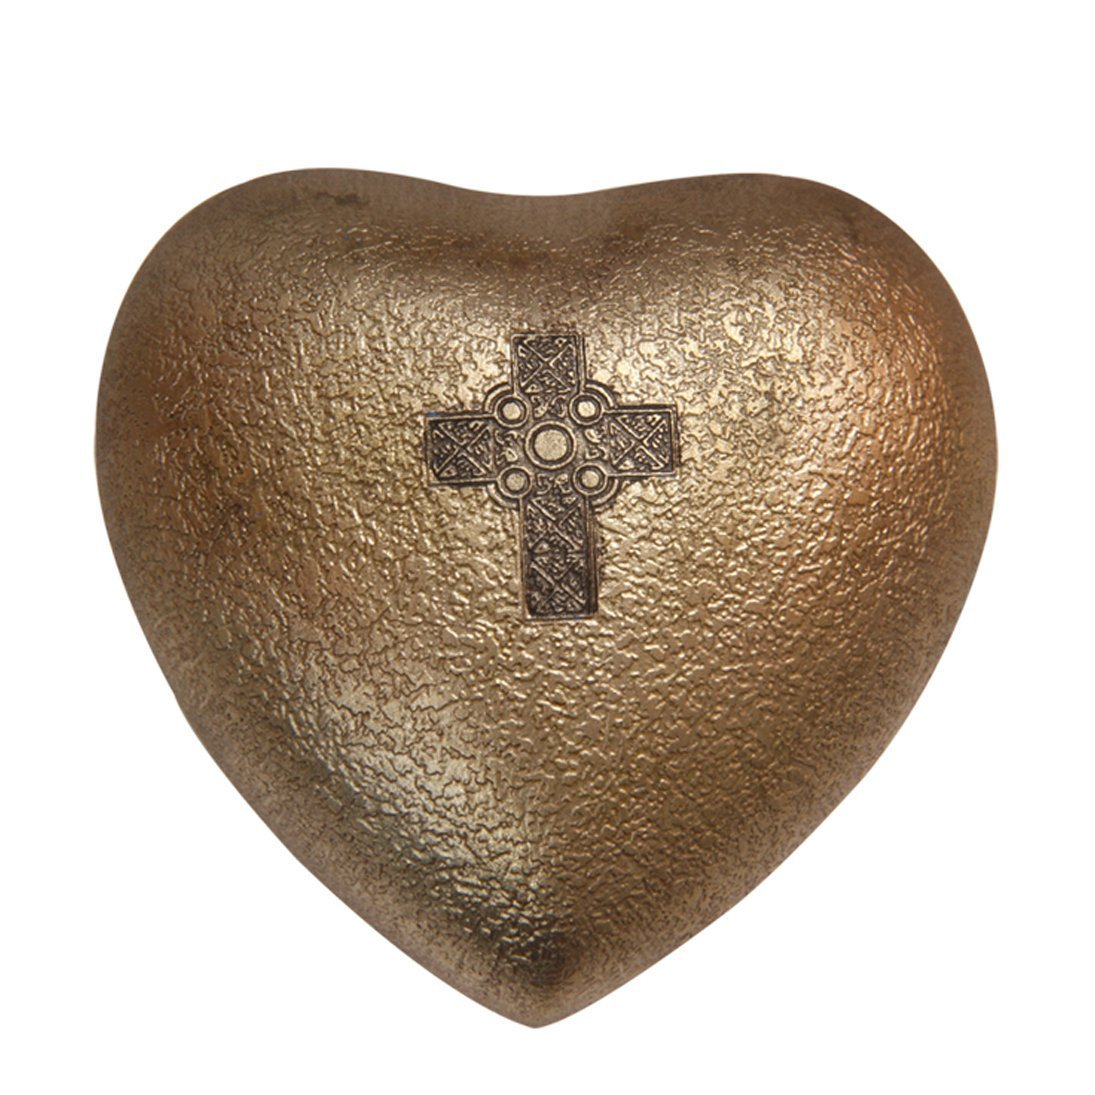 Celtic Cross Mini Heart Keepsake Urn for Human Ashes, Cross Memorial Urns